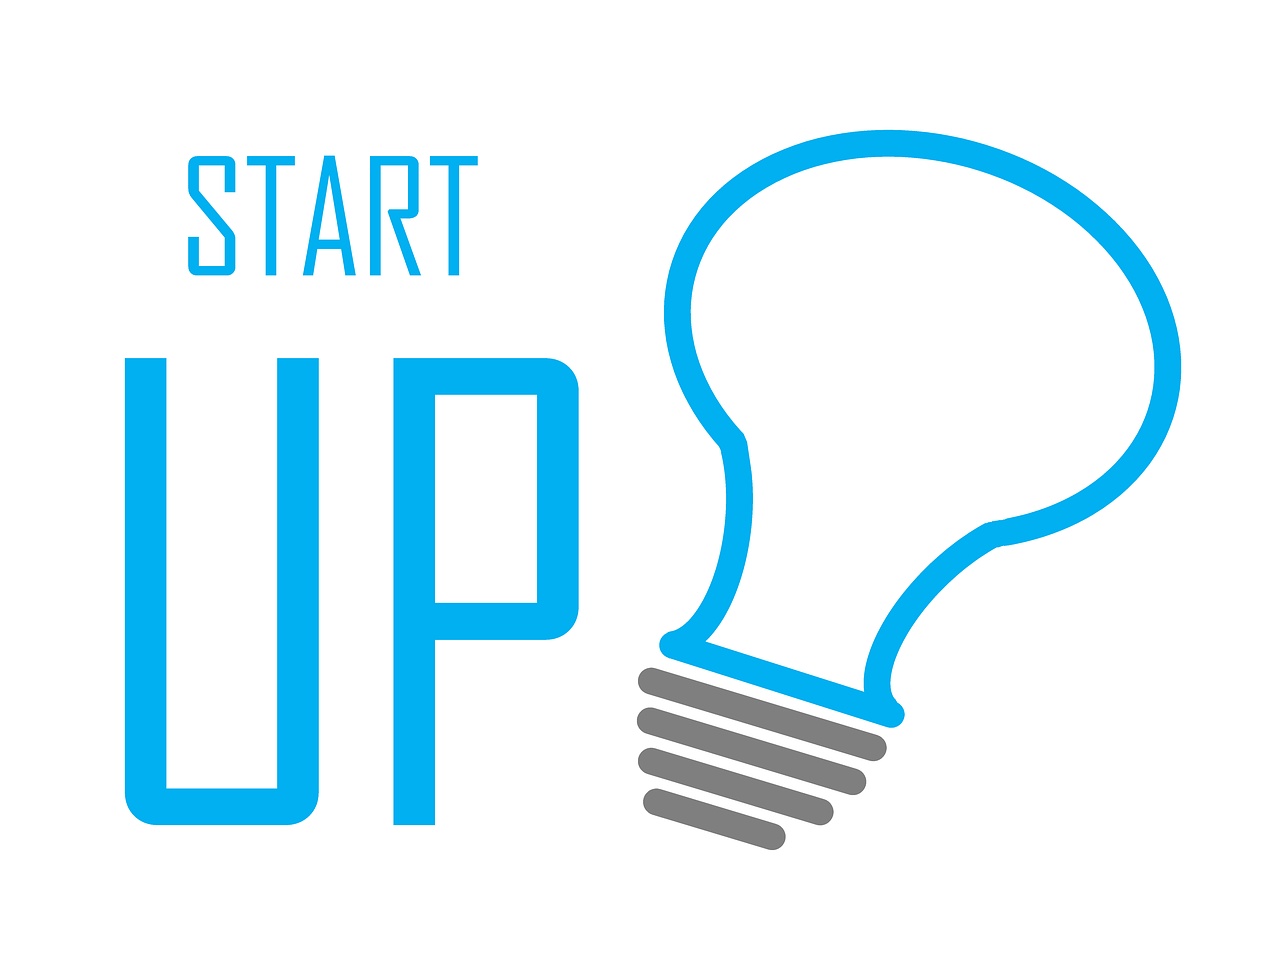 startup-1018514_1280.png